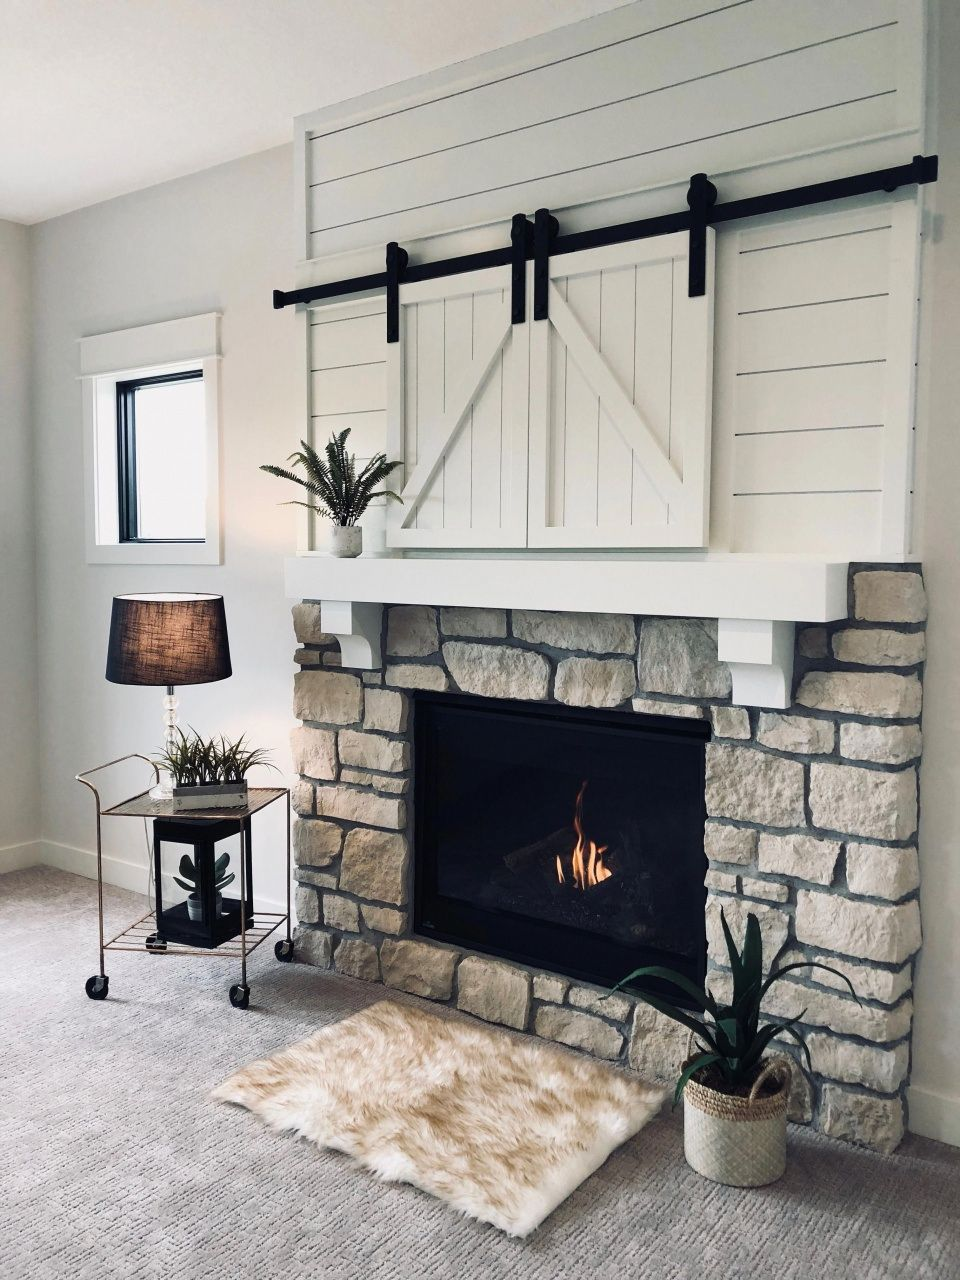 Built In Cabinets with Fireplace 2021   Living room with fireplace, White shiplap wall ...